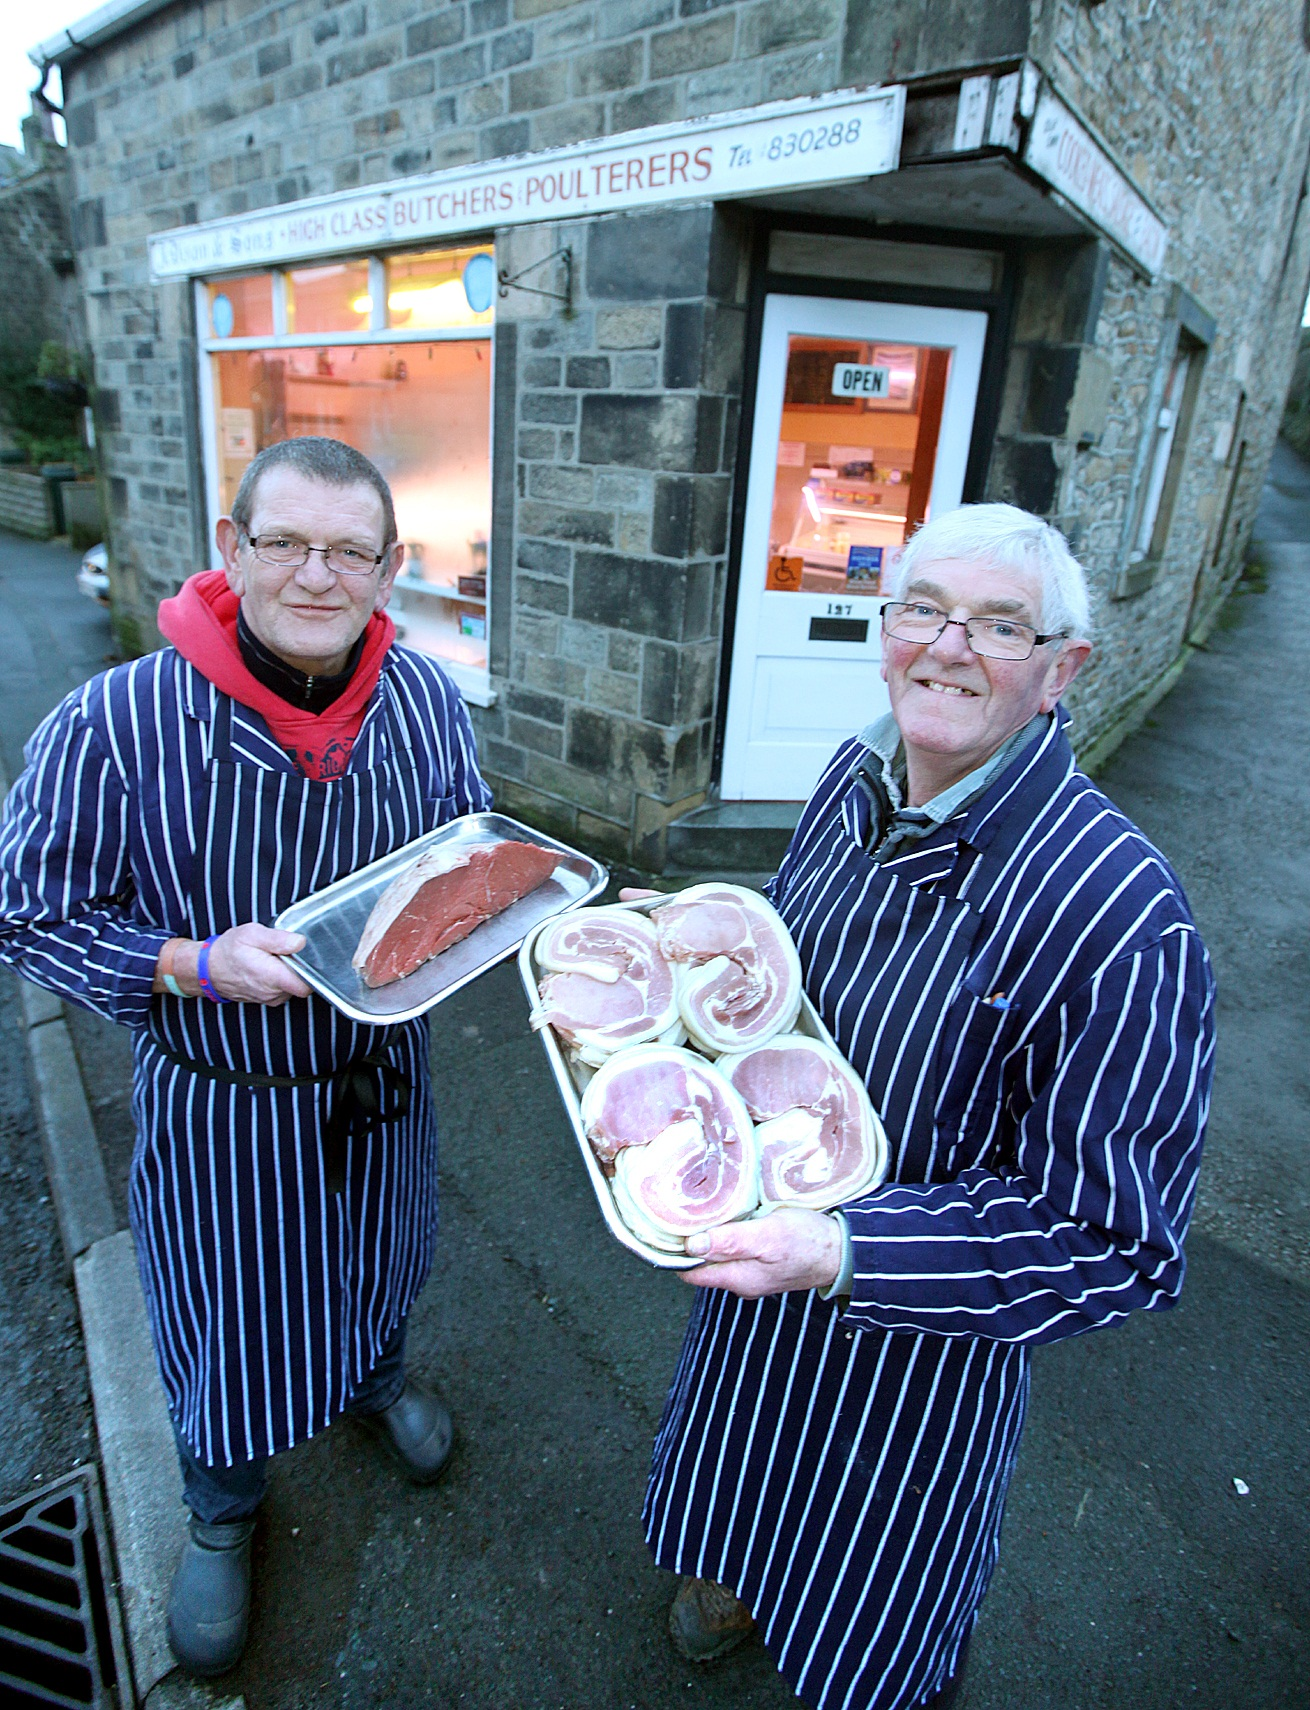 Addingham butcher's shutting up shop after 130 years